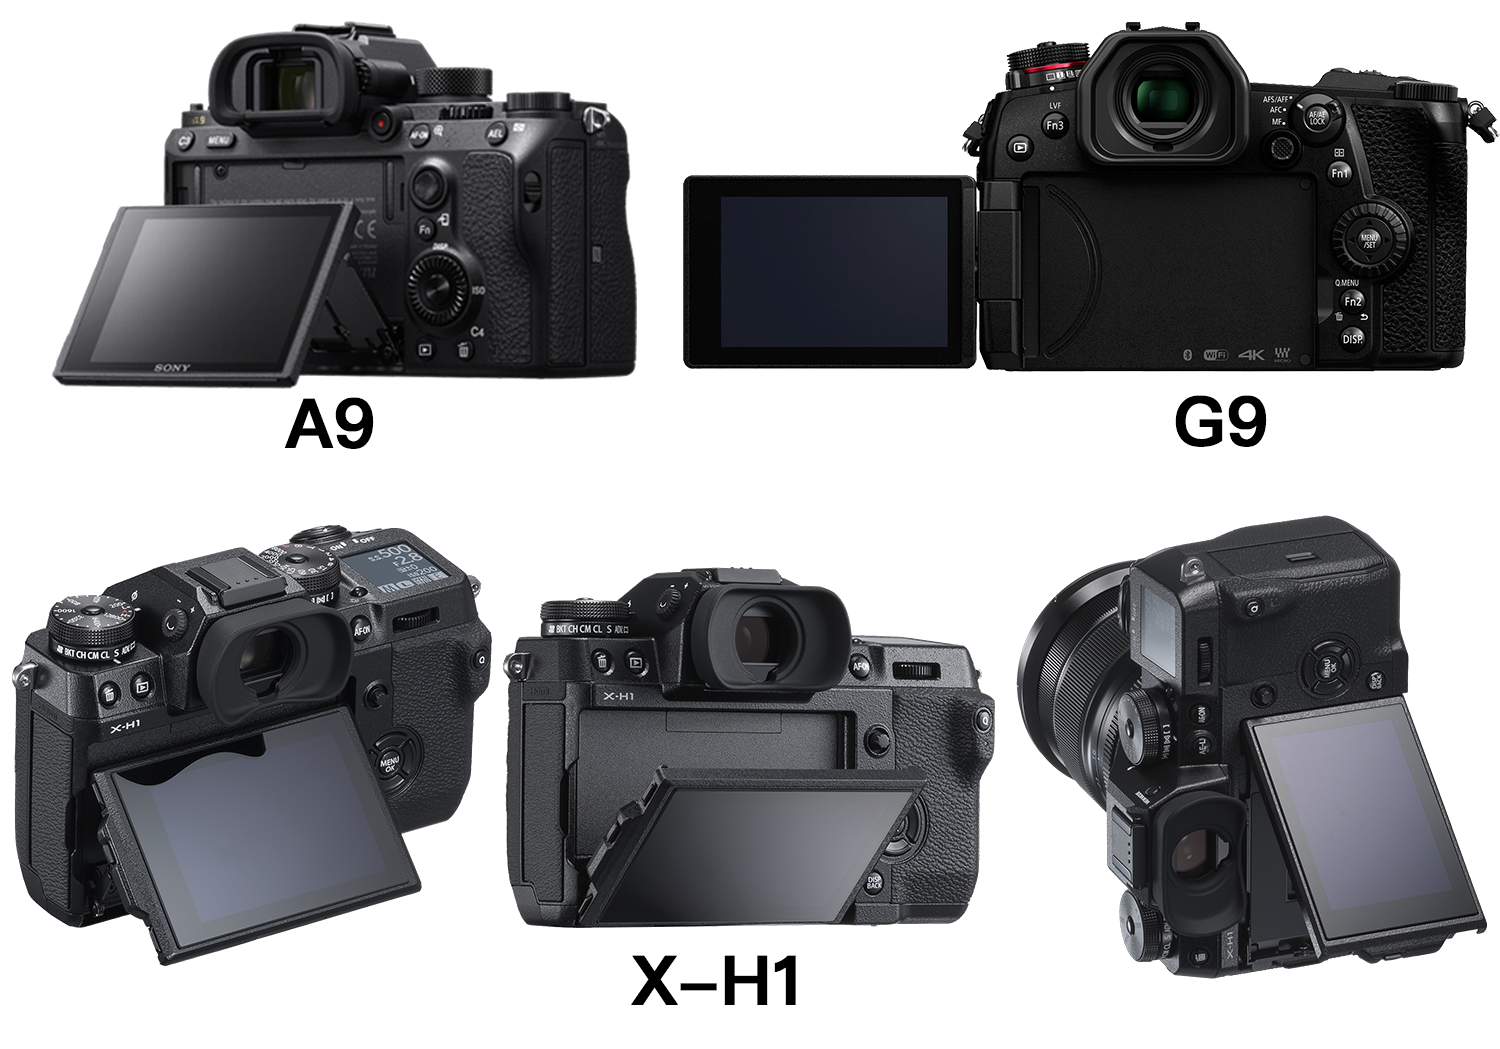 The Sony A9 vs  the Panasonic G9 vs  the Fujifilm X-H1